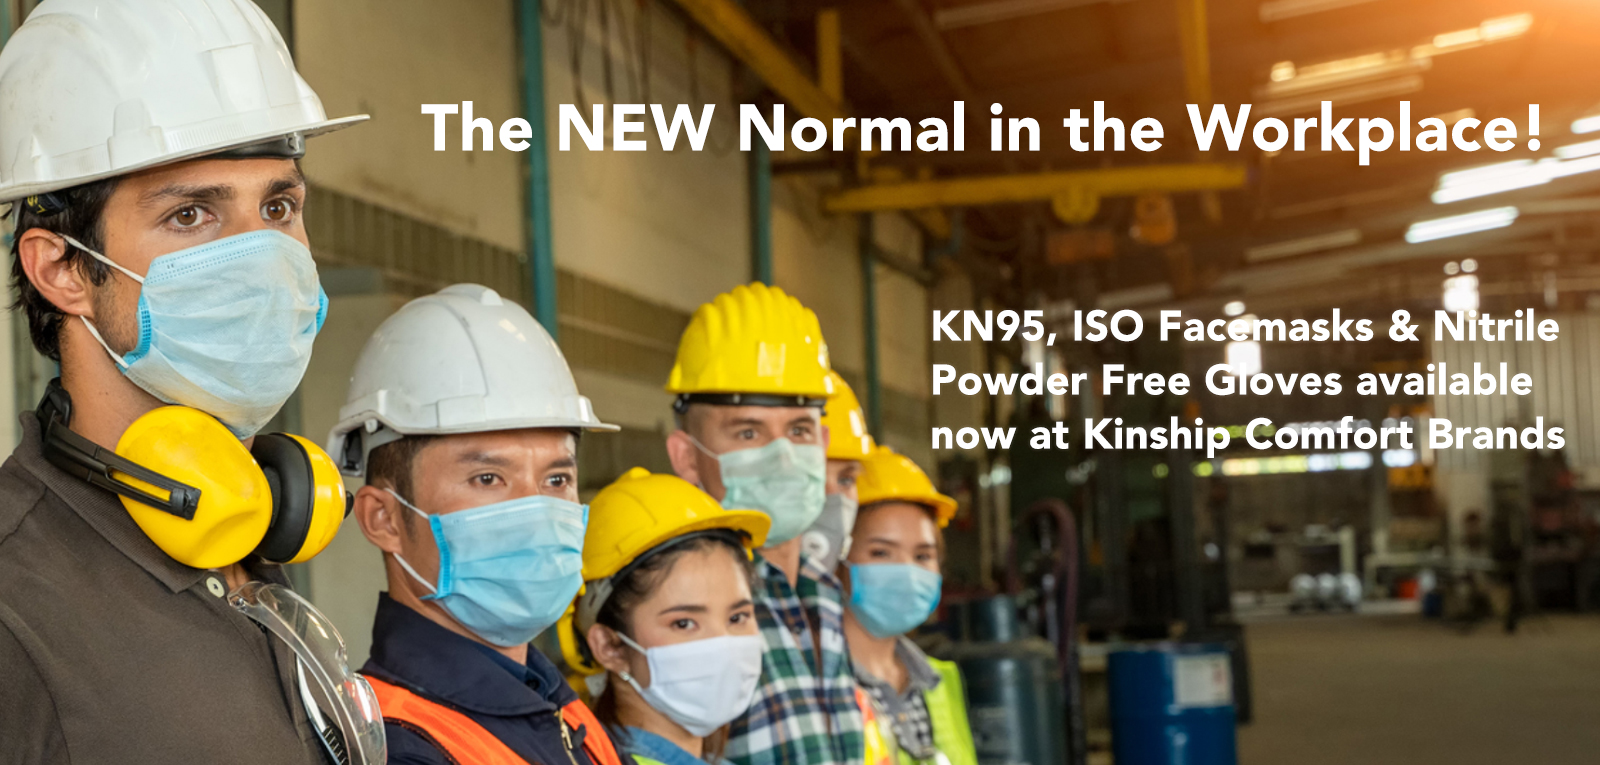 KN95 Facemasks, ISO Facemasks ang Nitrile Gloves